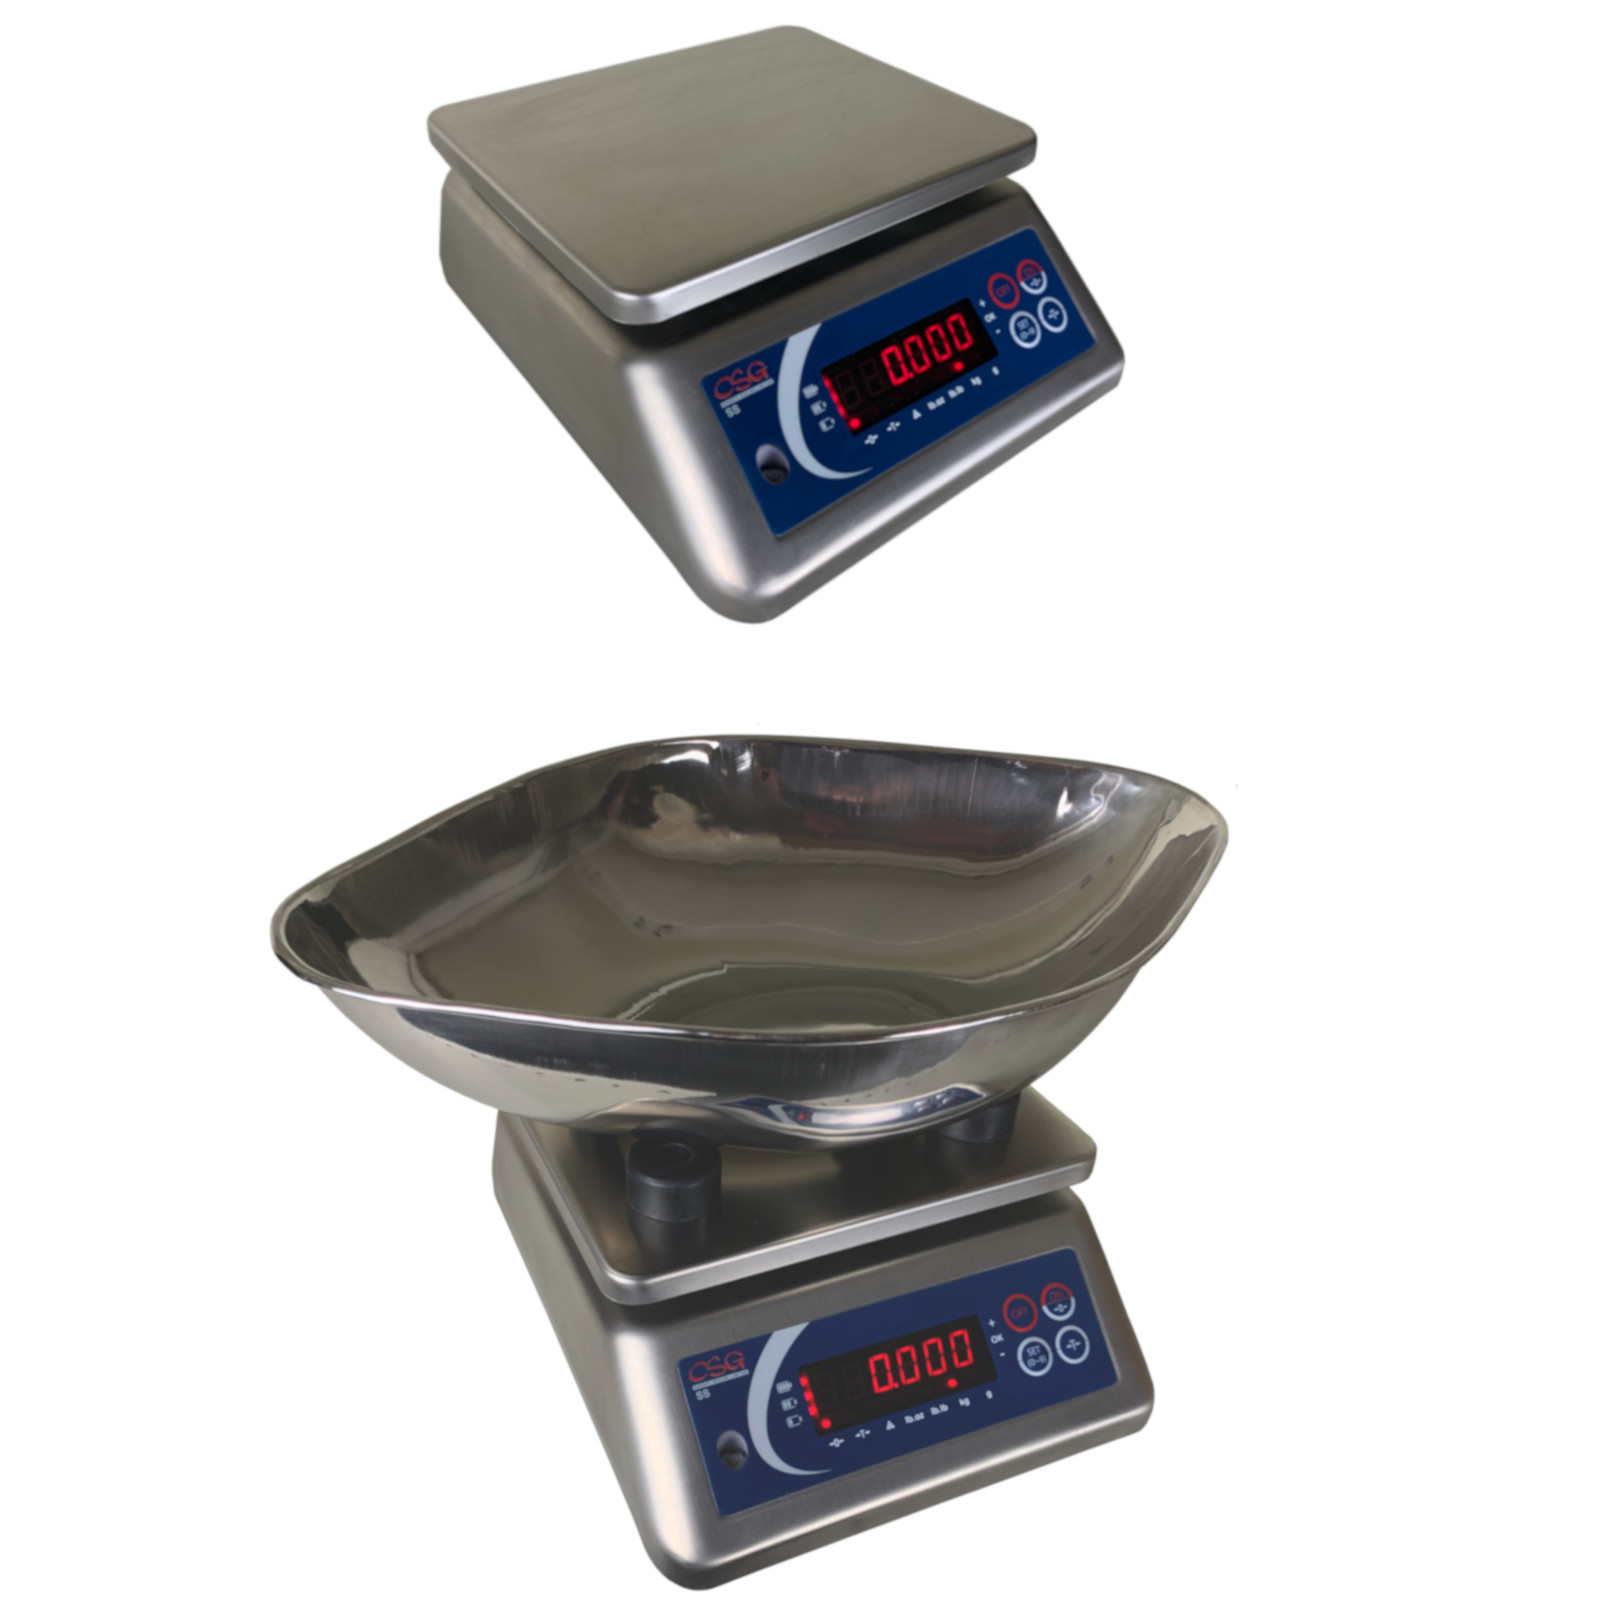 CSG SUPER-SS WATERPROOF FOOD SAFE BENCH SCALE